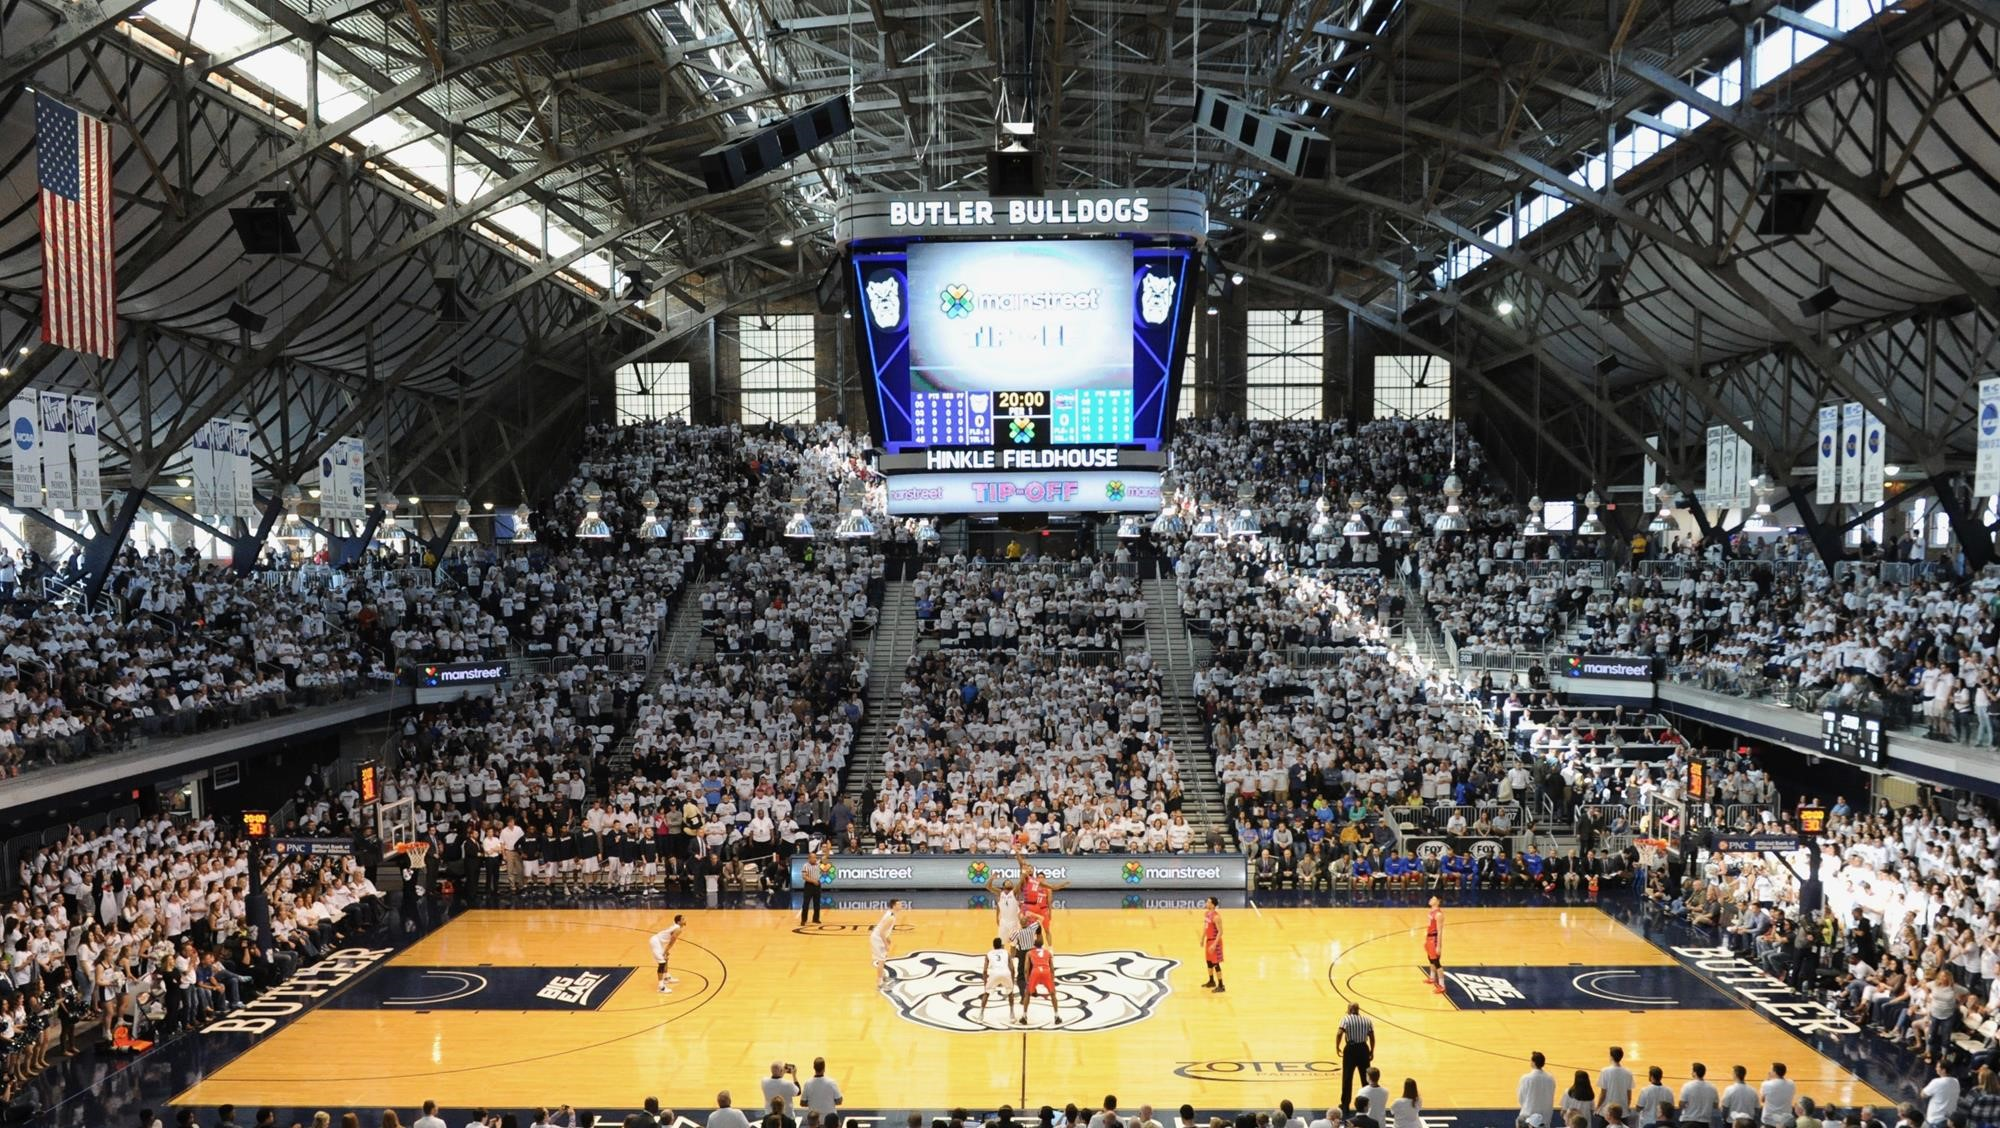 Hinkle_whiteout_sold_out